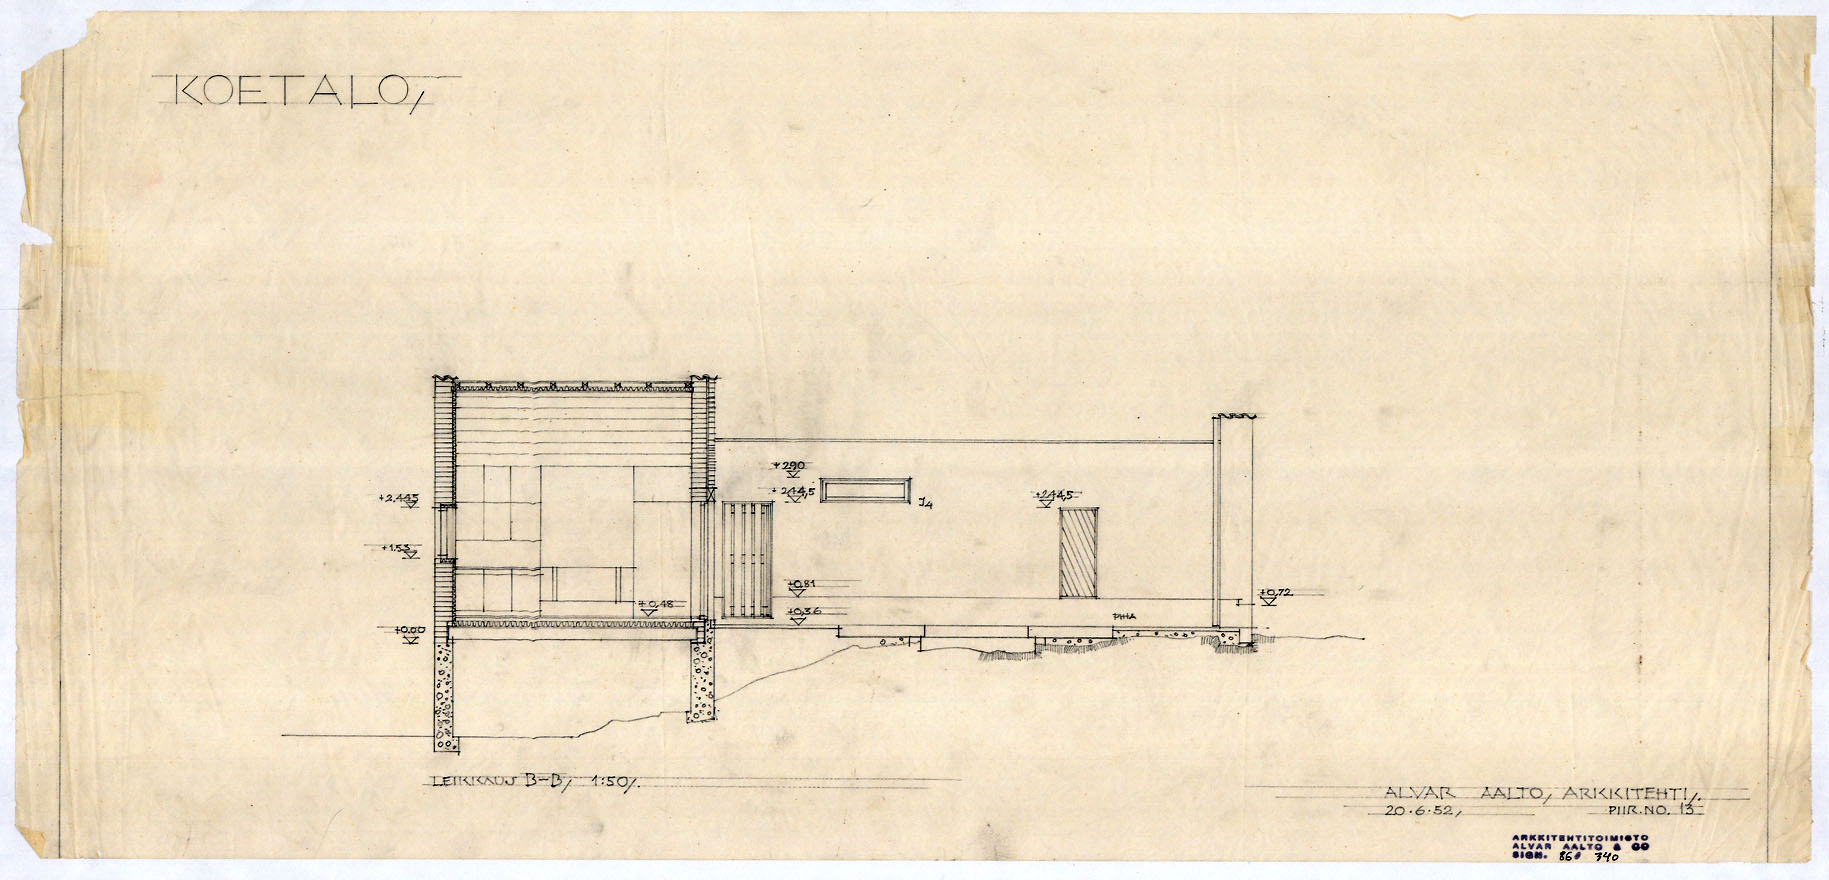 1829x880 Architectural Drawings Of The Muuratsalo Experimental House